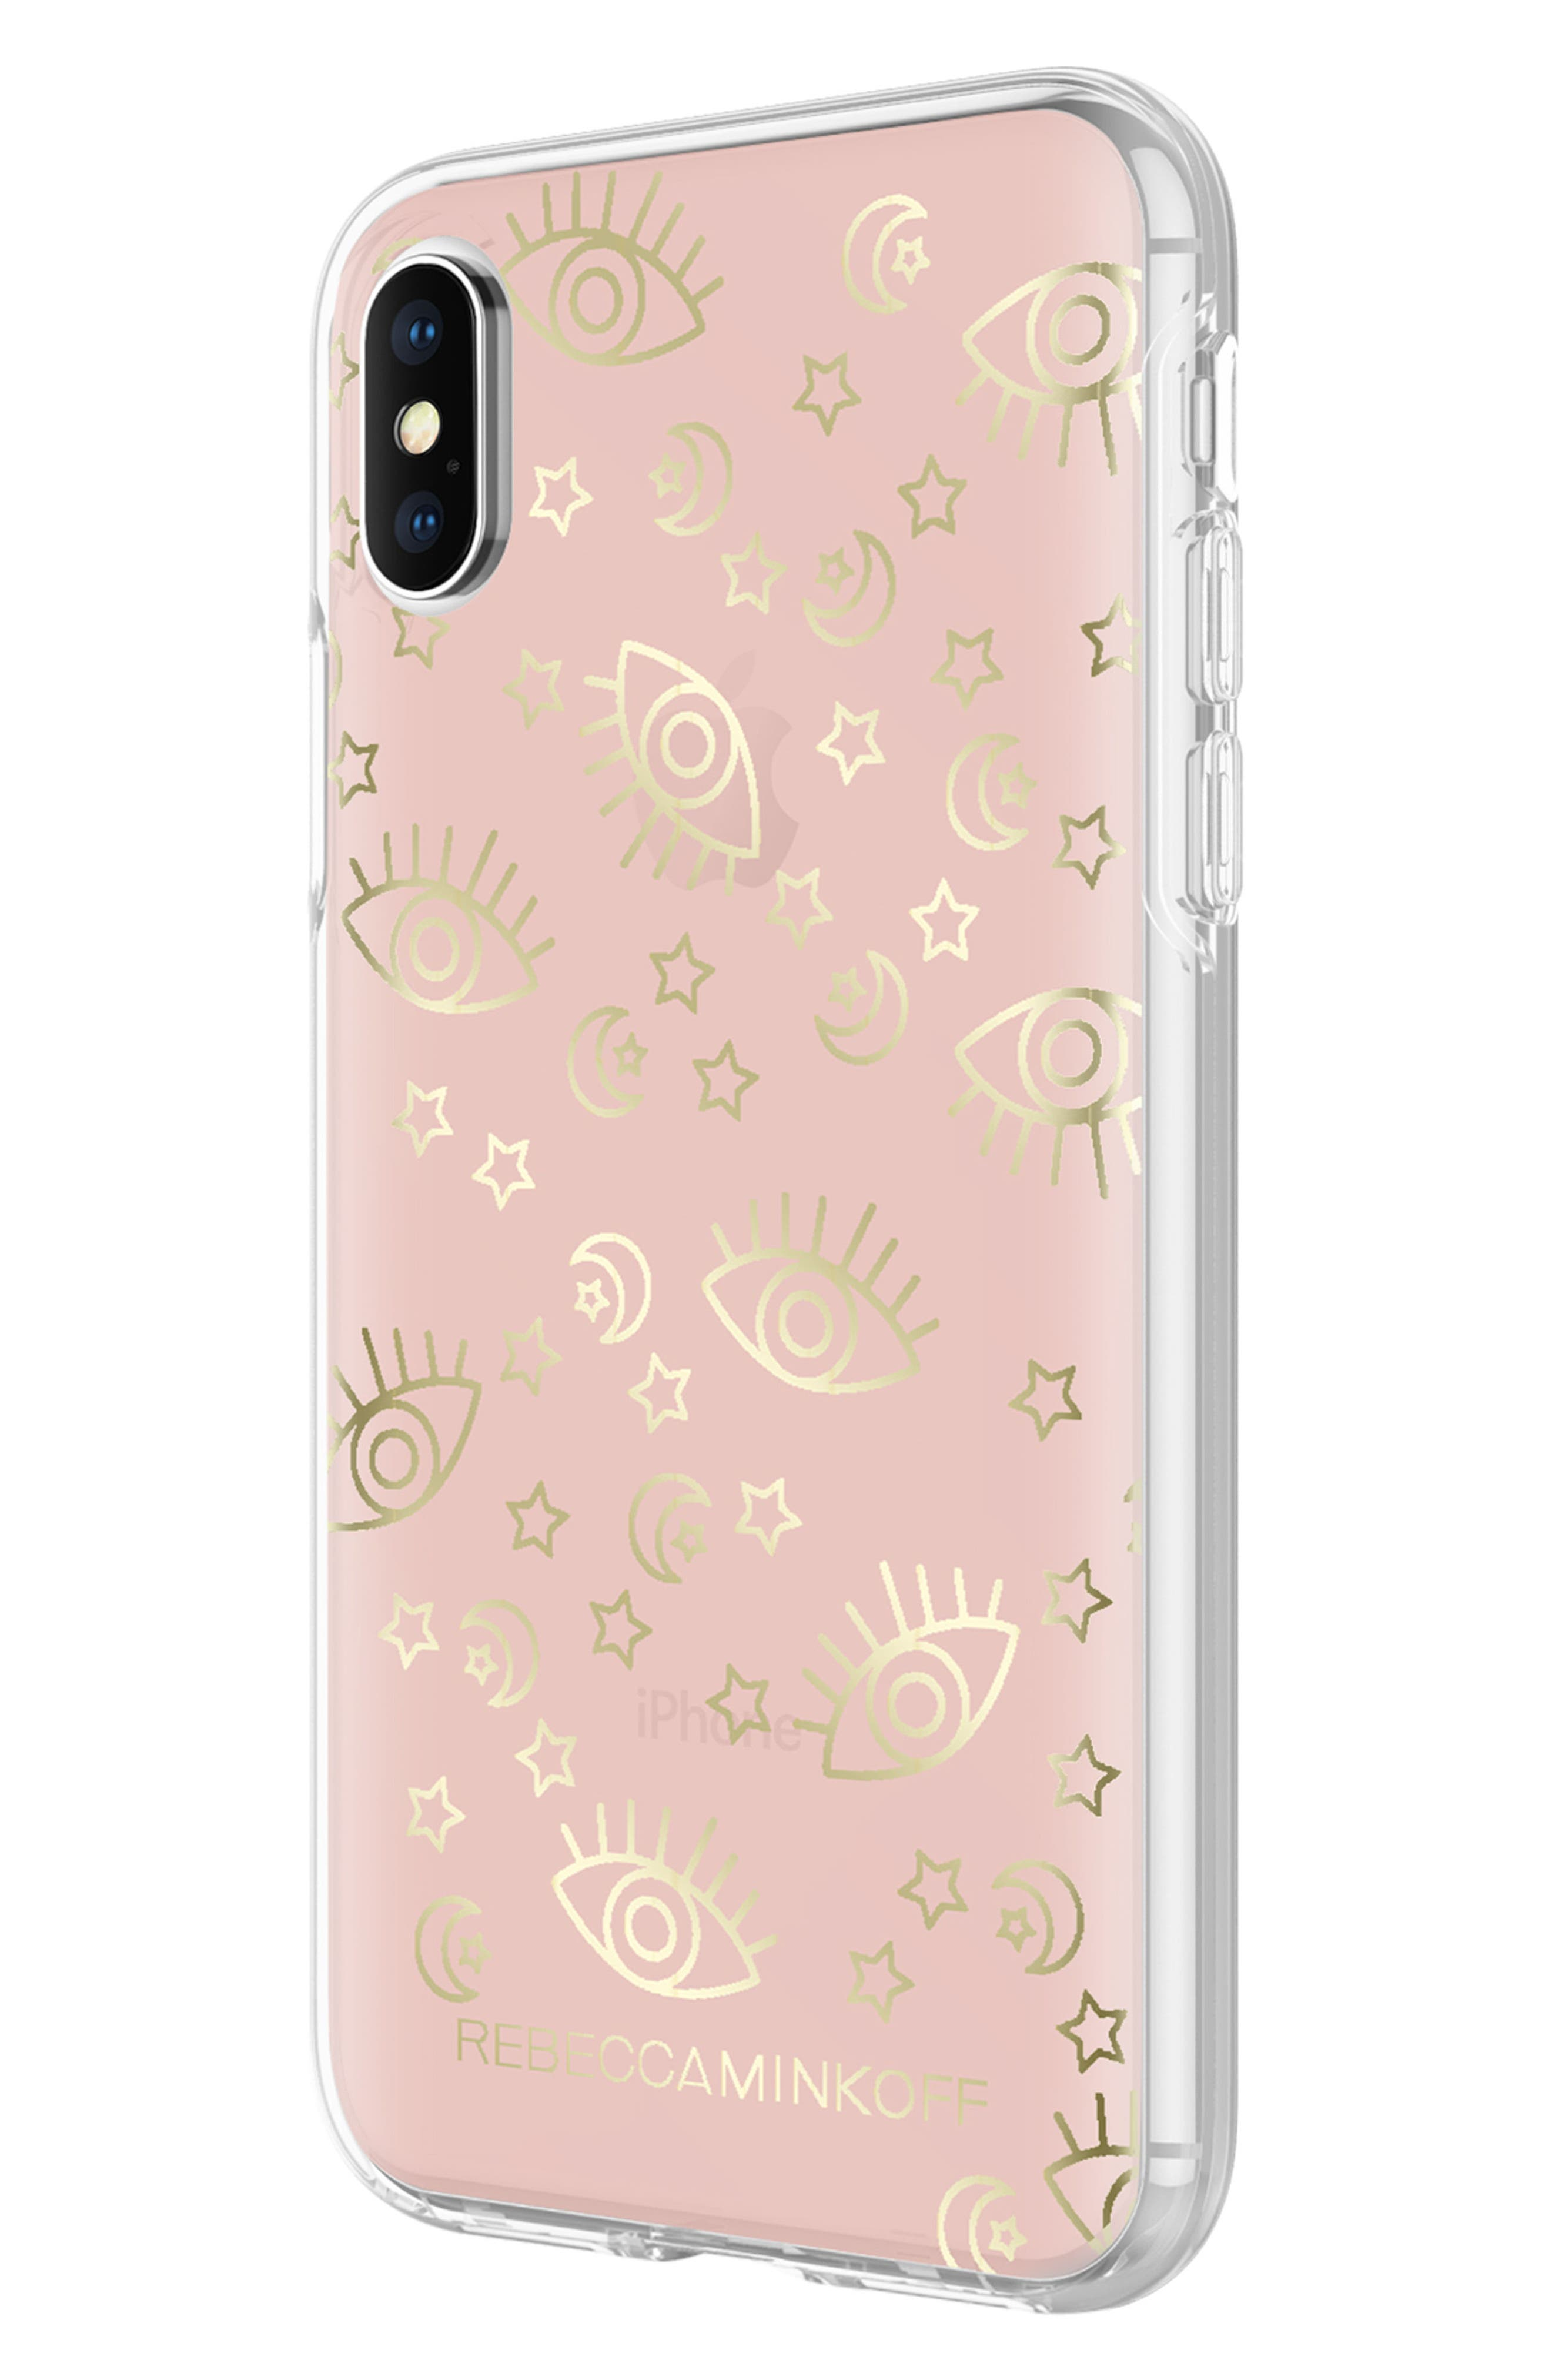 Metallic Galaxy Icon iPhone X/Xs Case,                             Alternate thumbnail 5, color,                             ROSE GOLD/ GOLD FOIL